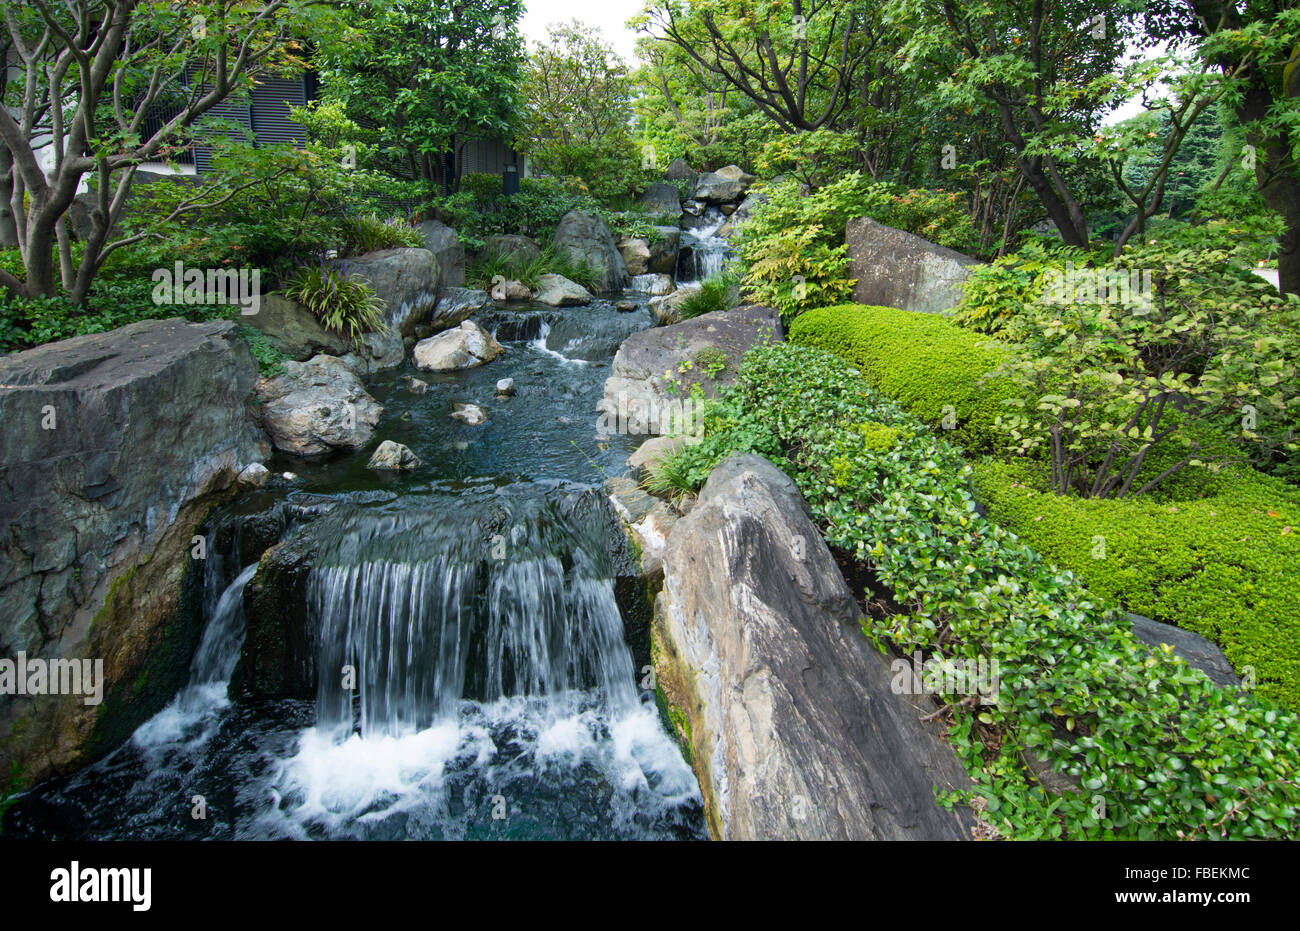 Tokyo Japan quiet area with waterfall at Sensoji Temple at Tokyo's oldest temple with water and rocks and peaceful - Stock Image